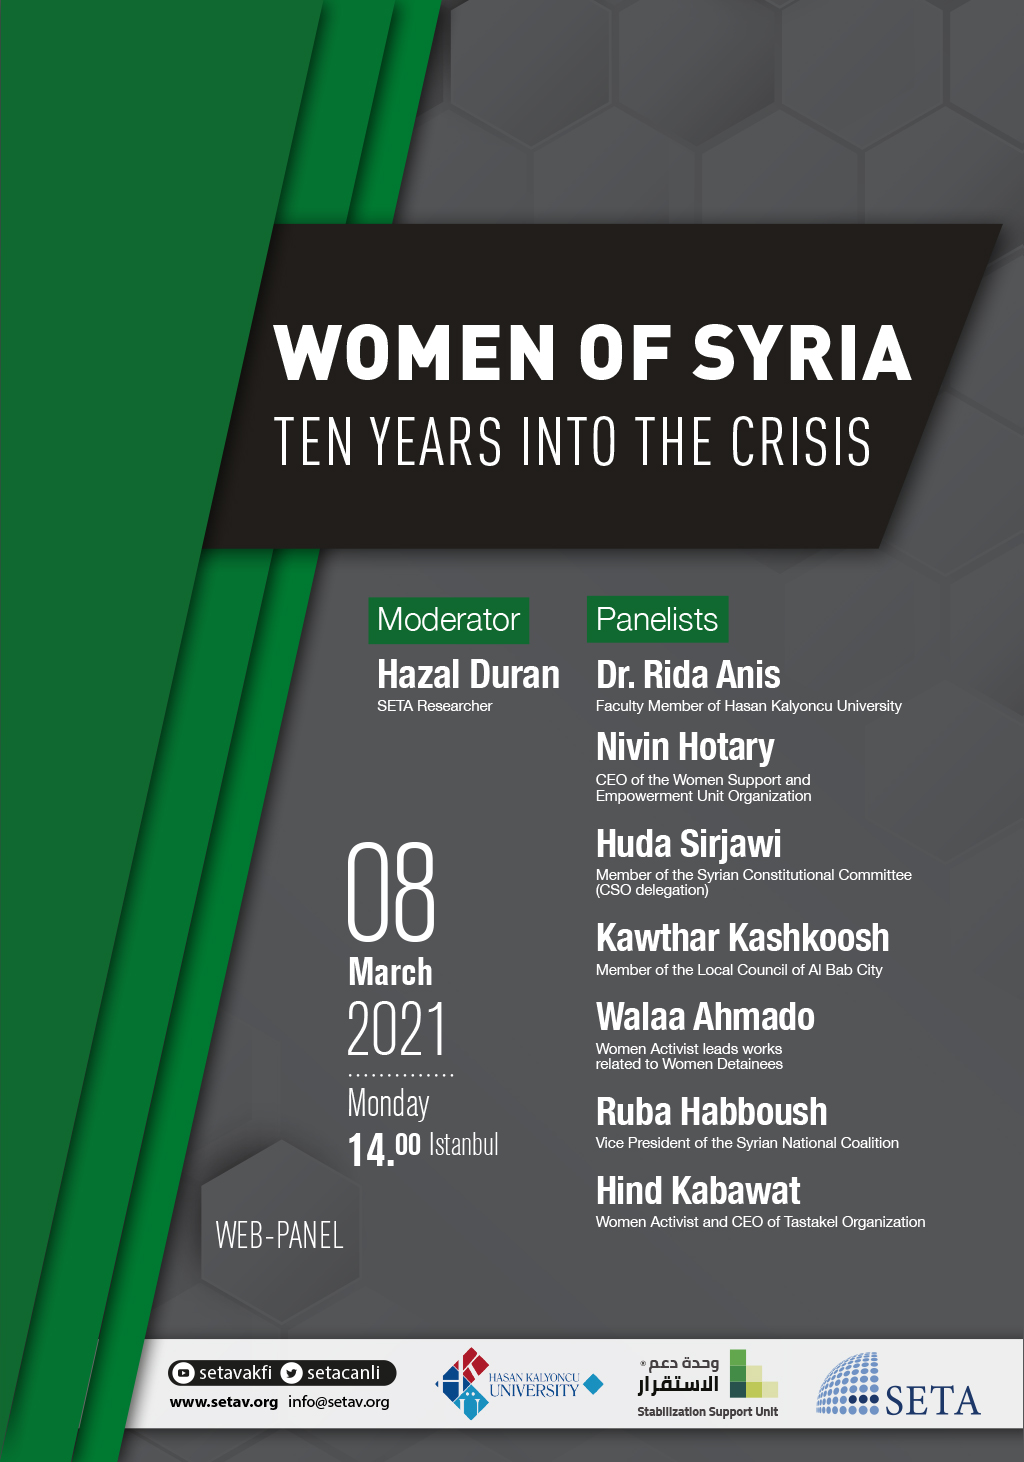 Web Panel: Womens of Syria | Ten Years into the Crisis